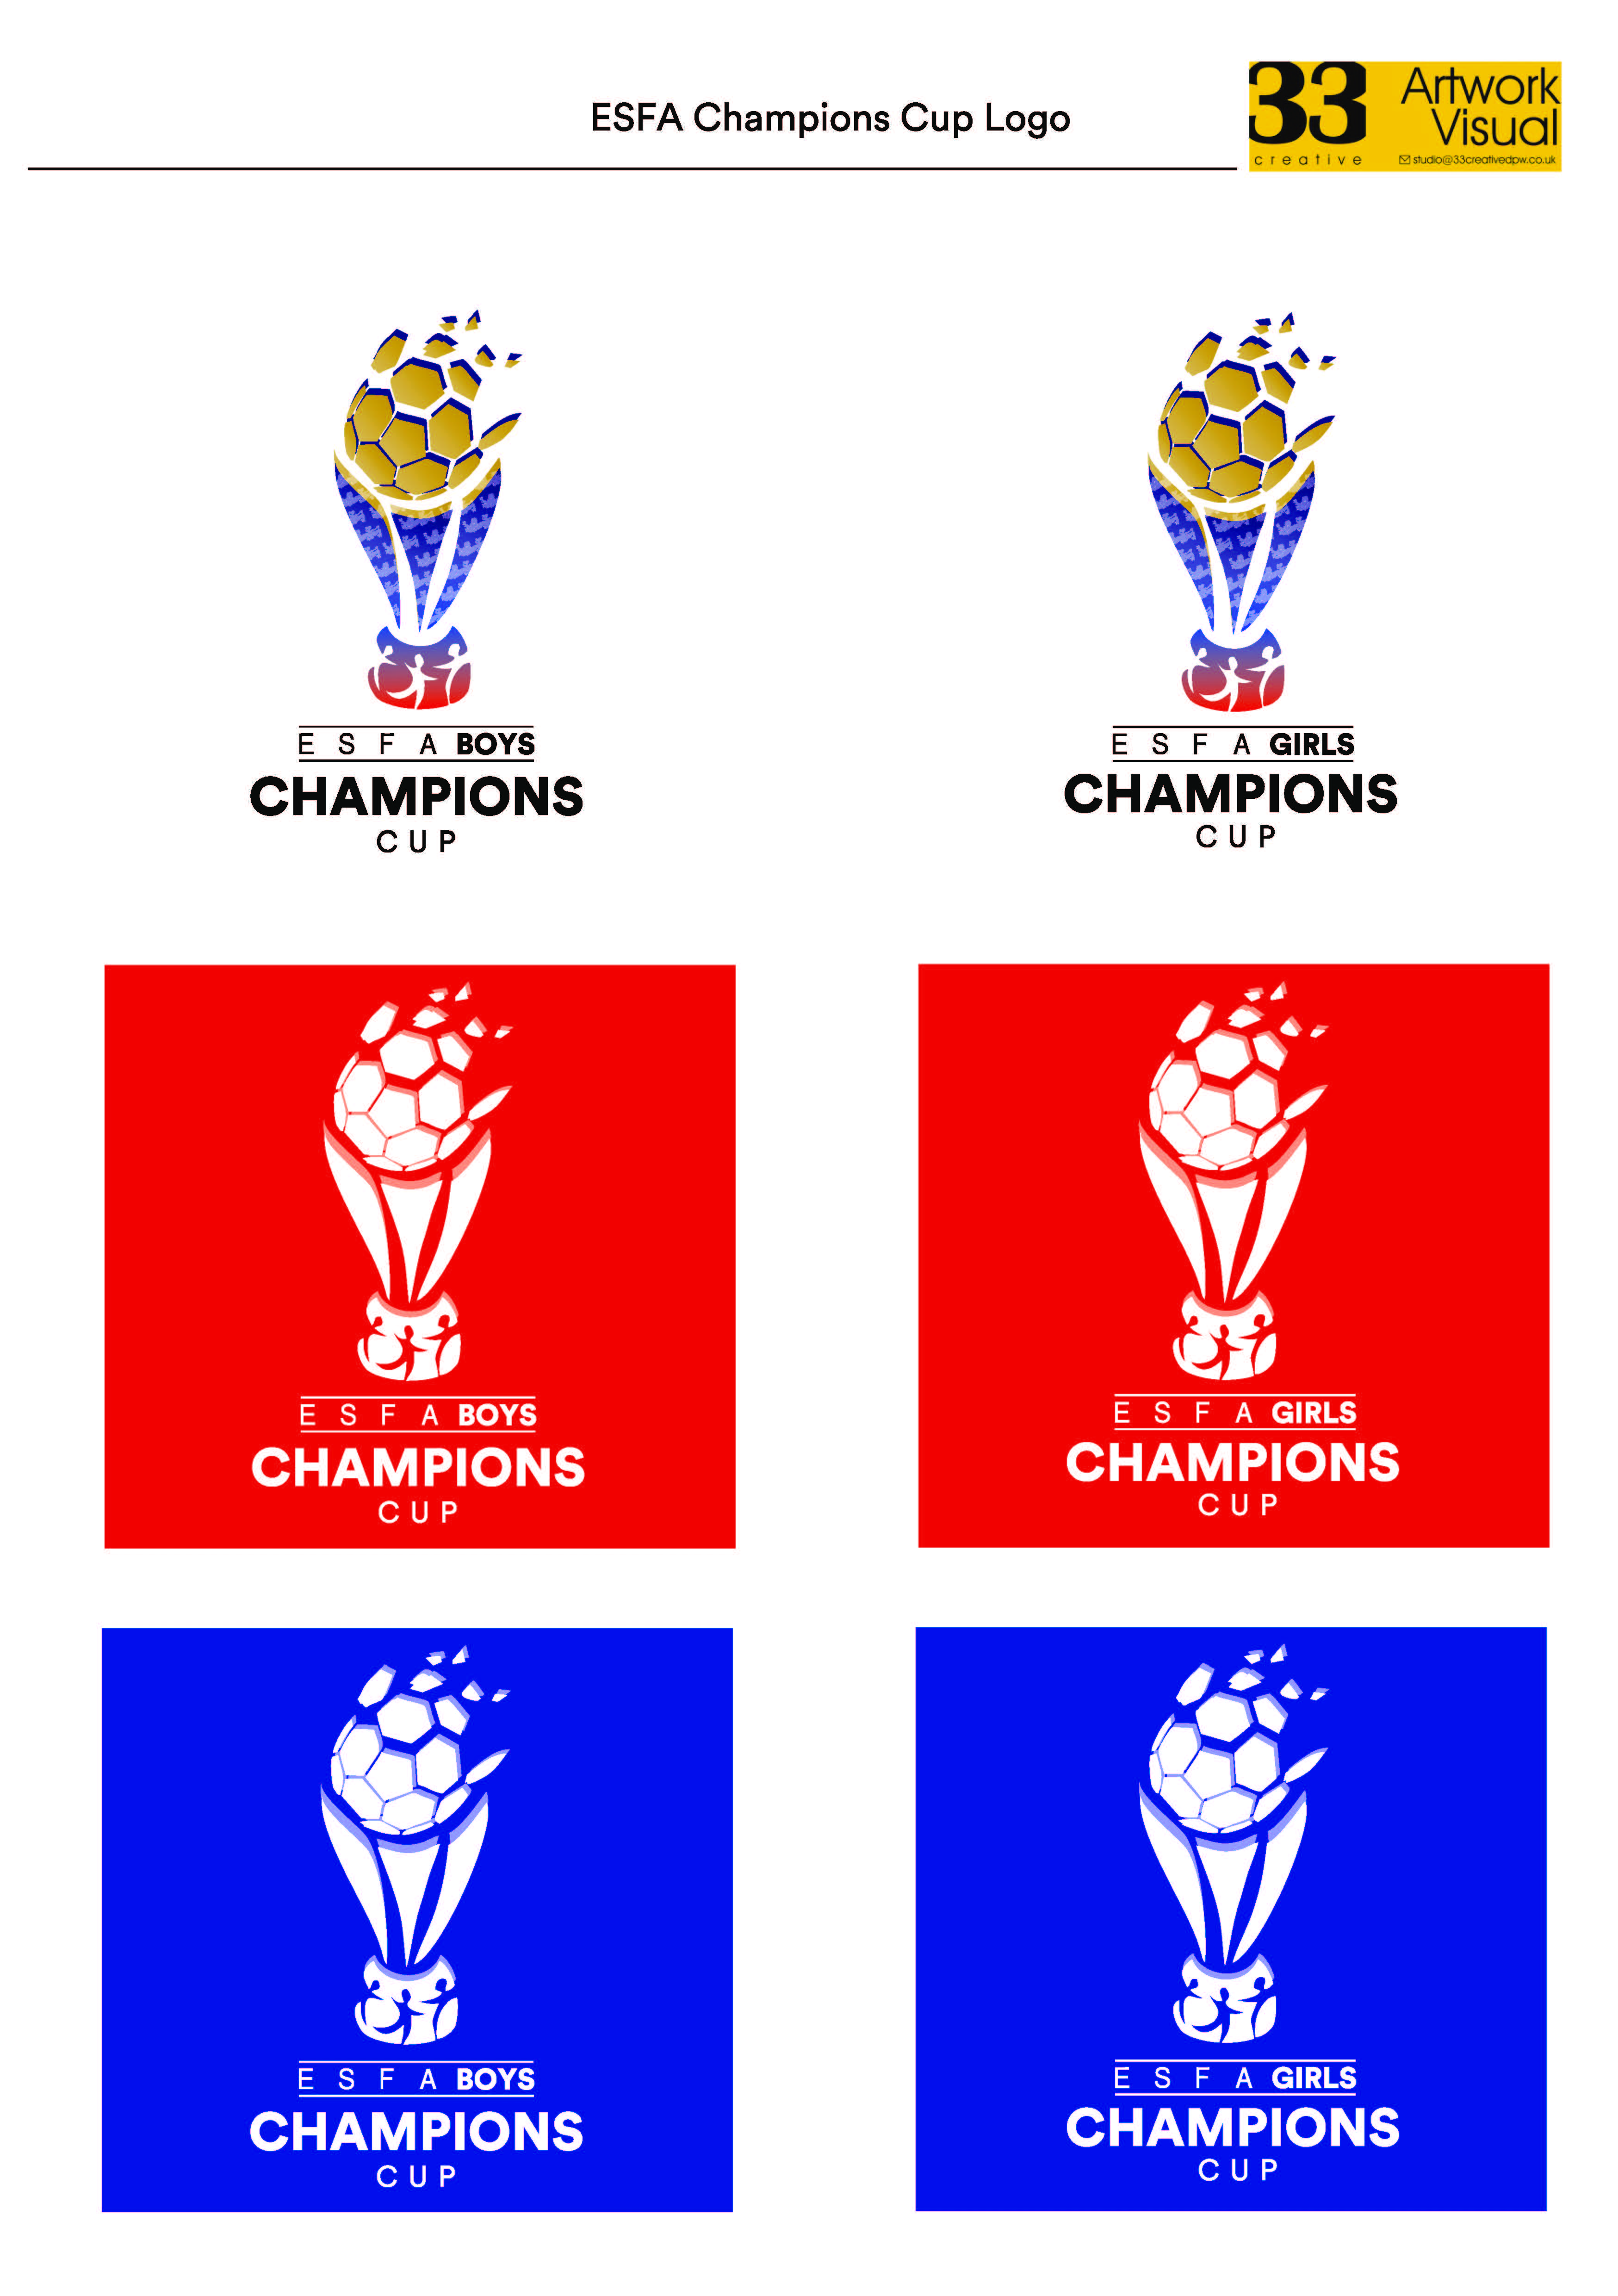 ESFA Champions Cup brand Logo_Page_3